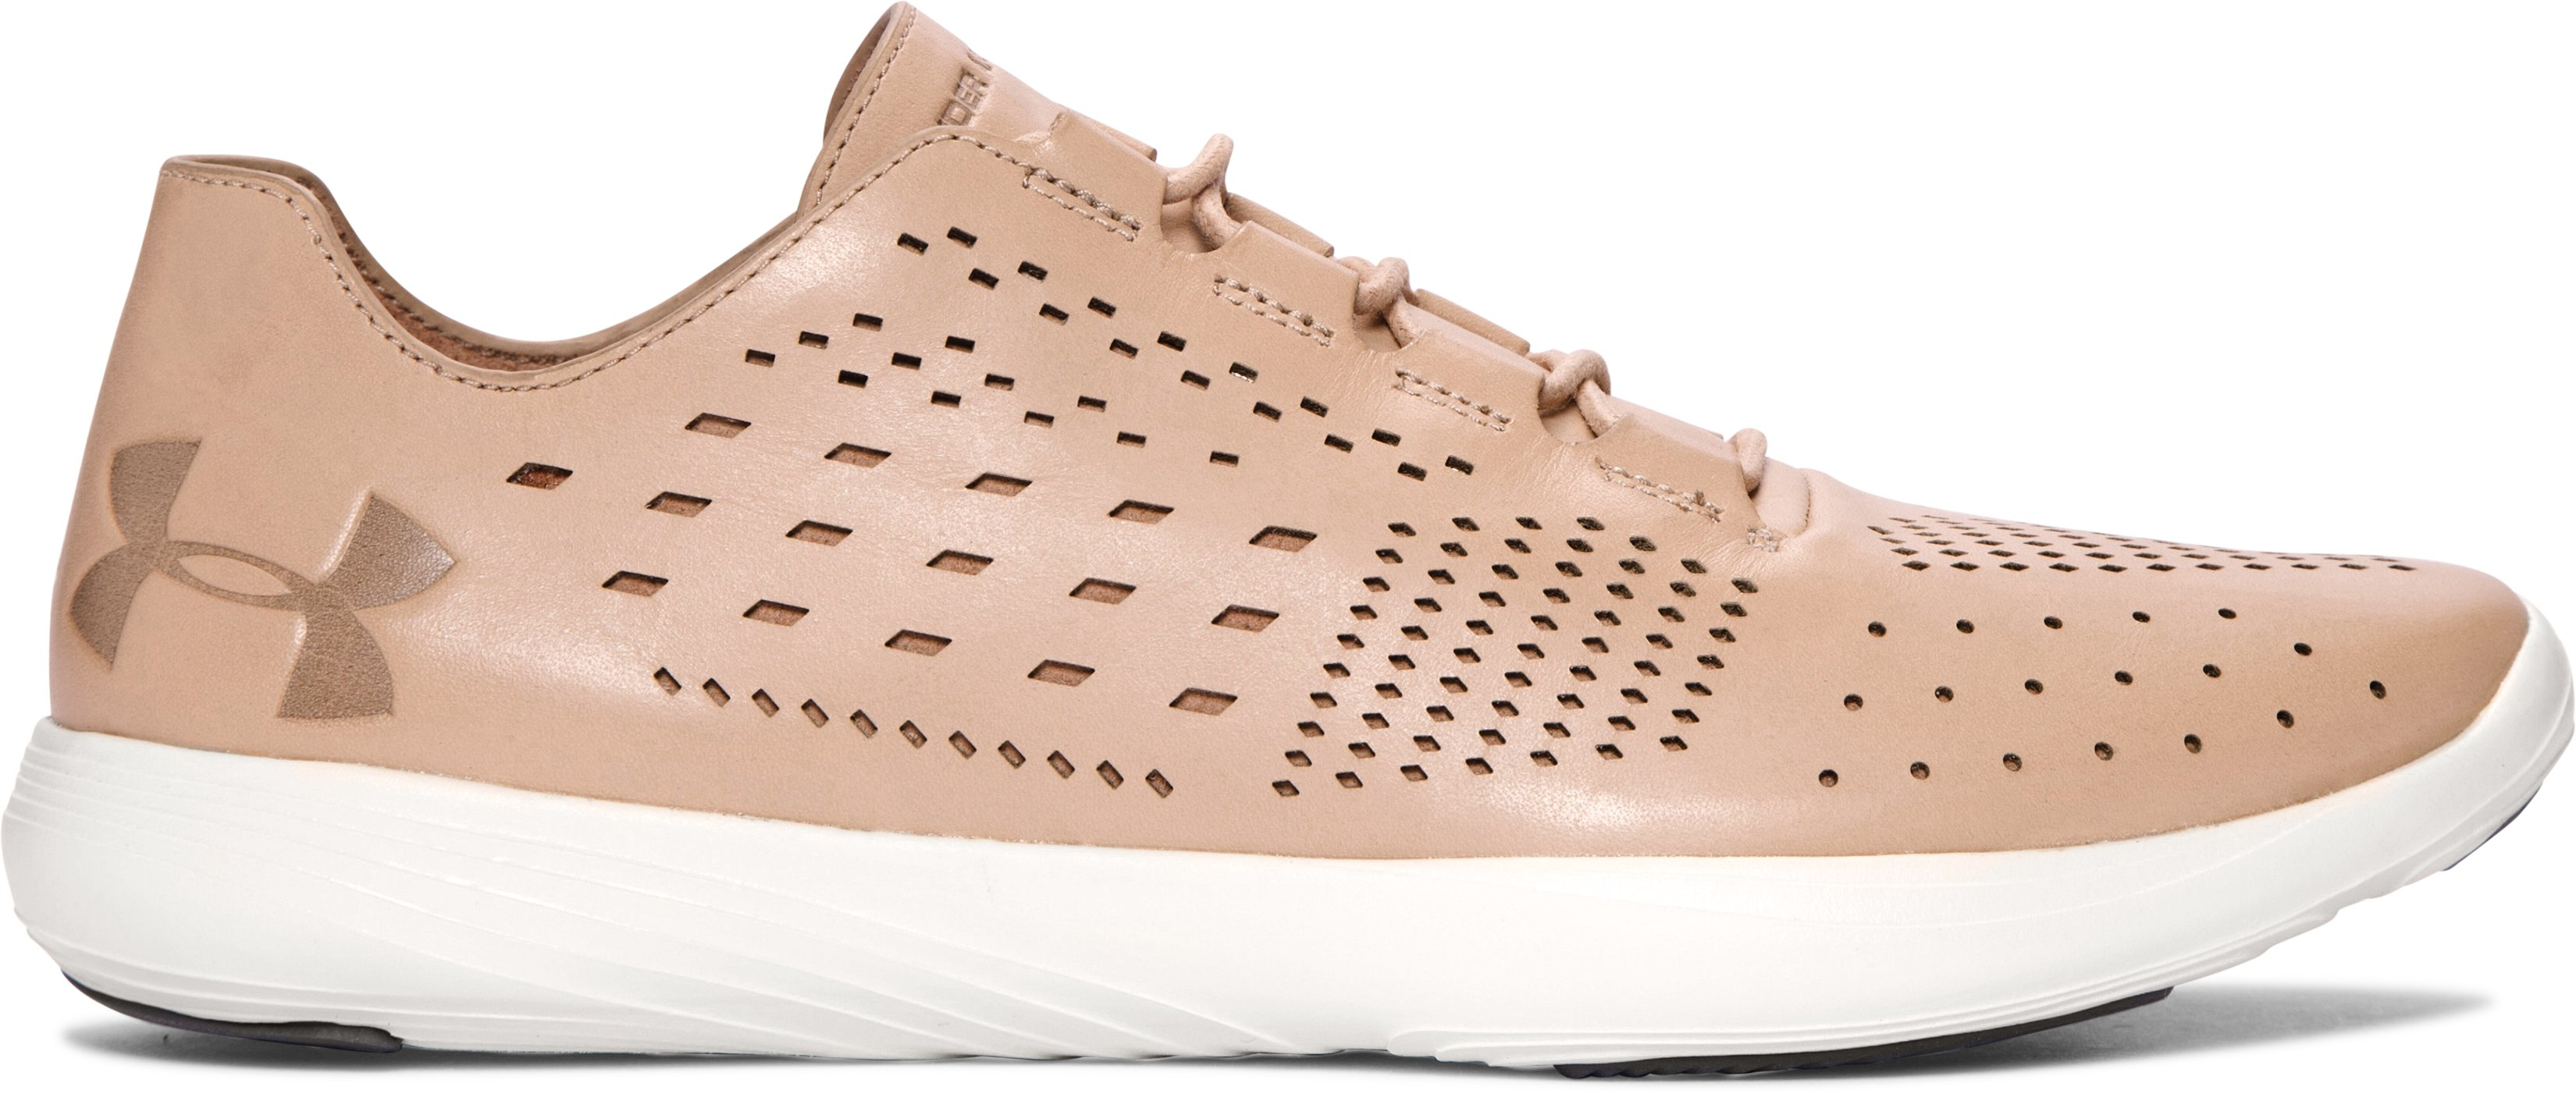 Women's UA Precision Low Lifestyle Shoes, CORAL SANDS, zoomed image